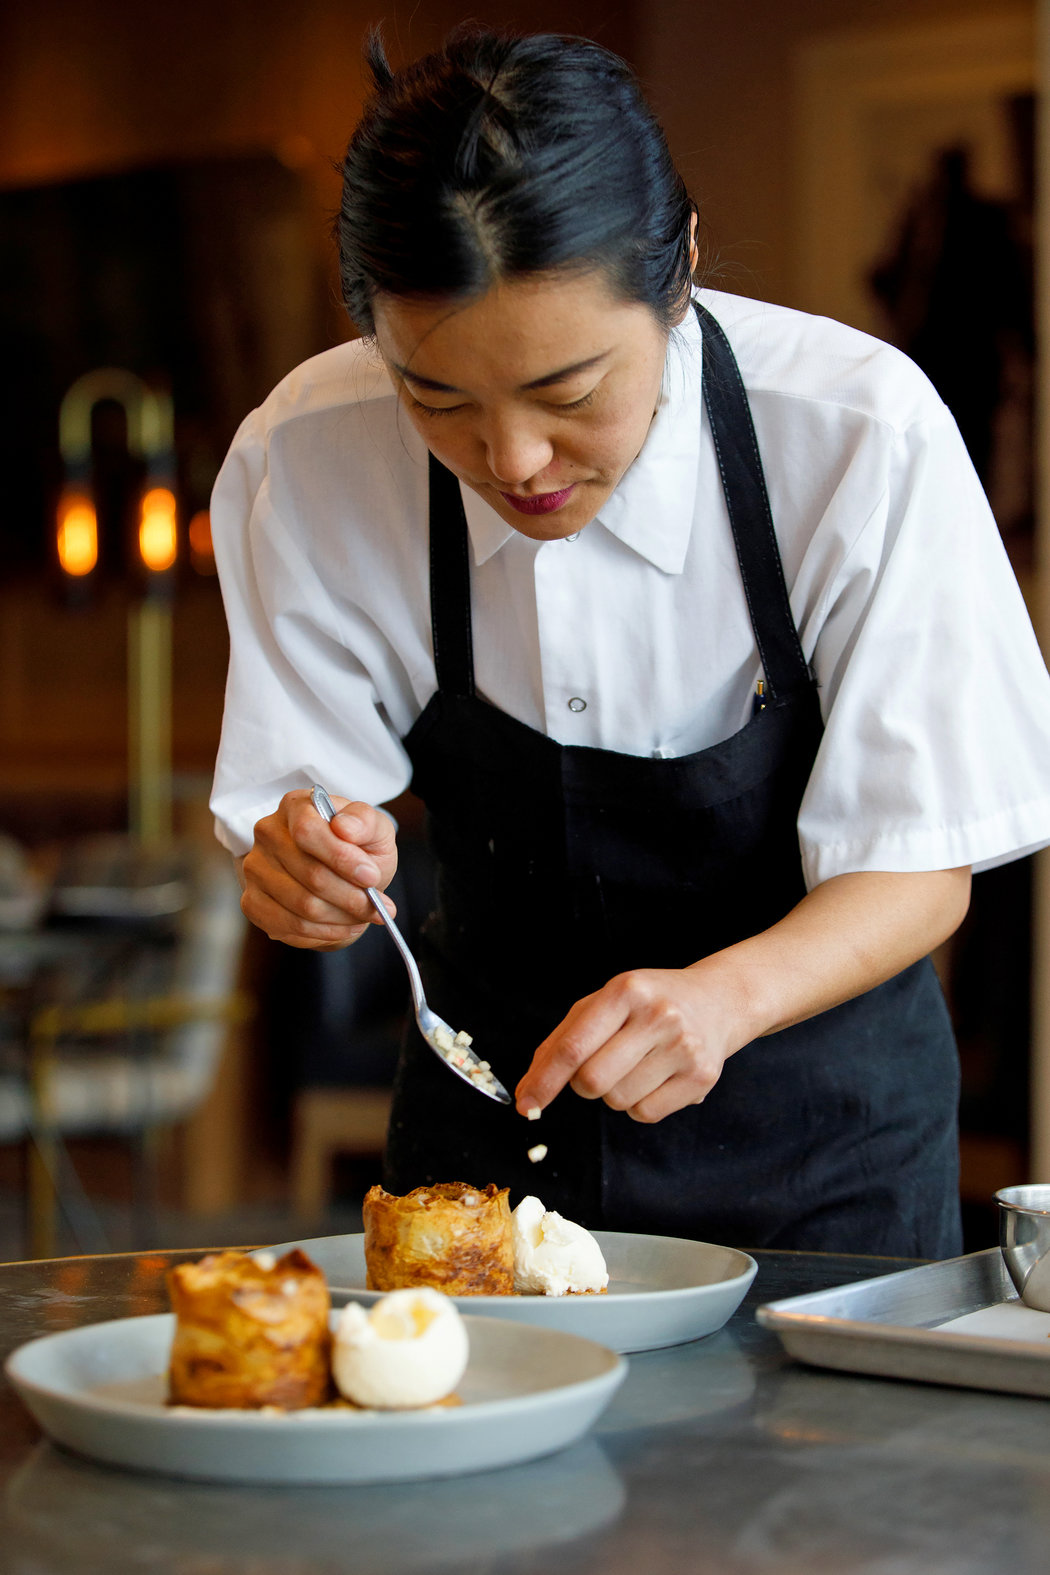 A New School Of Pastry Chefs Got Its Start In Architecture